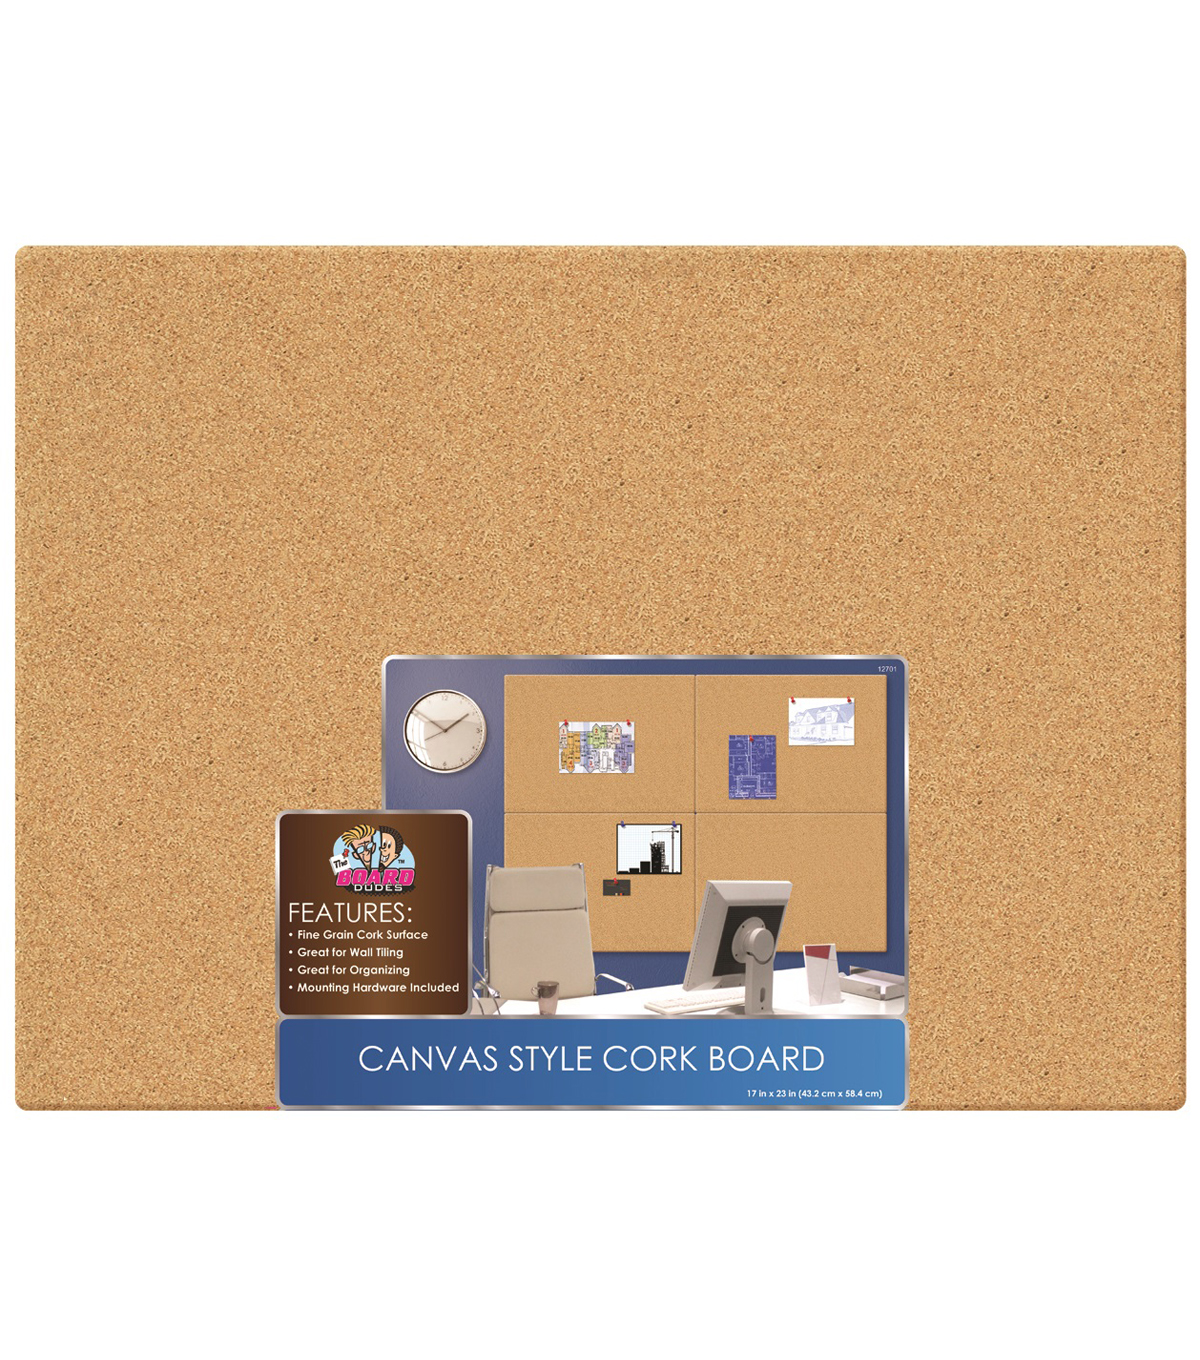 Unframed Cork Boards17inx23in